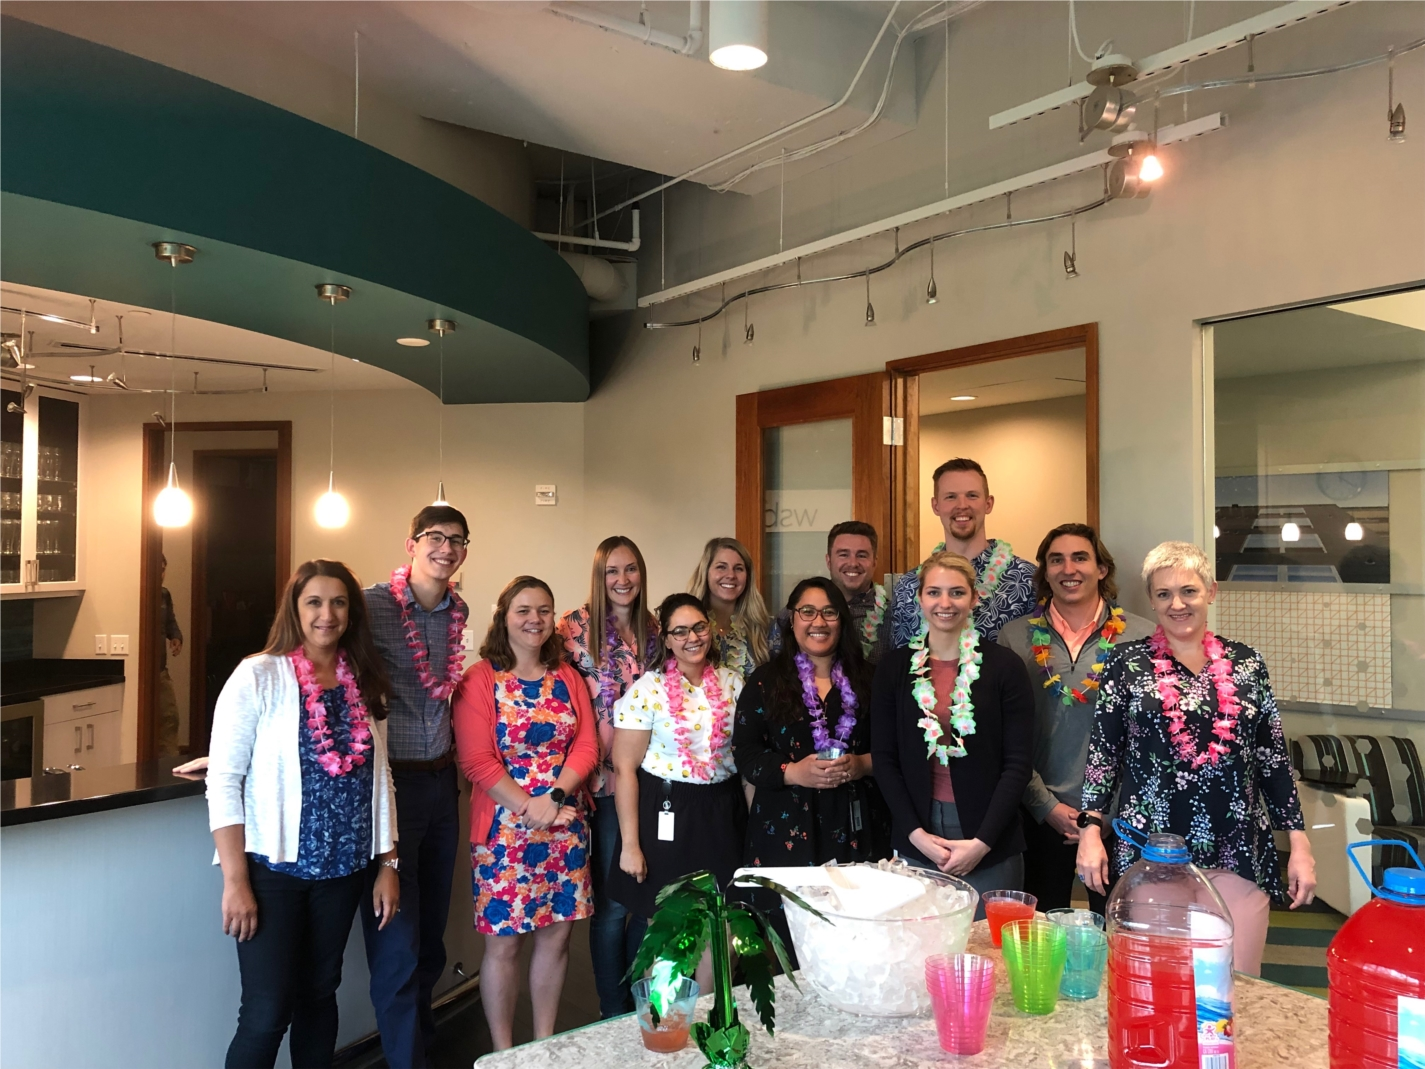 WSB staff dressed down in their favorite Hawaiian apparel to raise awareness for the Leukemia and Lymphoma Society. The company exceeded their $10,000 fundraising goal and was named the winner of the Dress for LLS fundraiser.